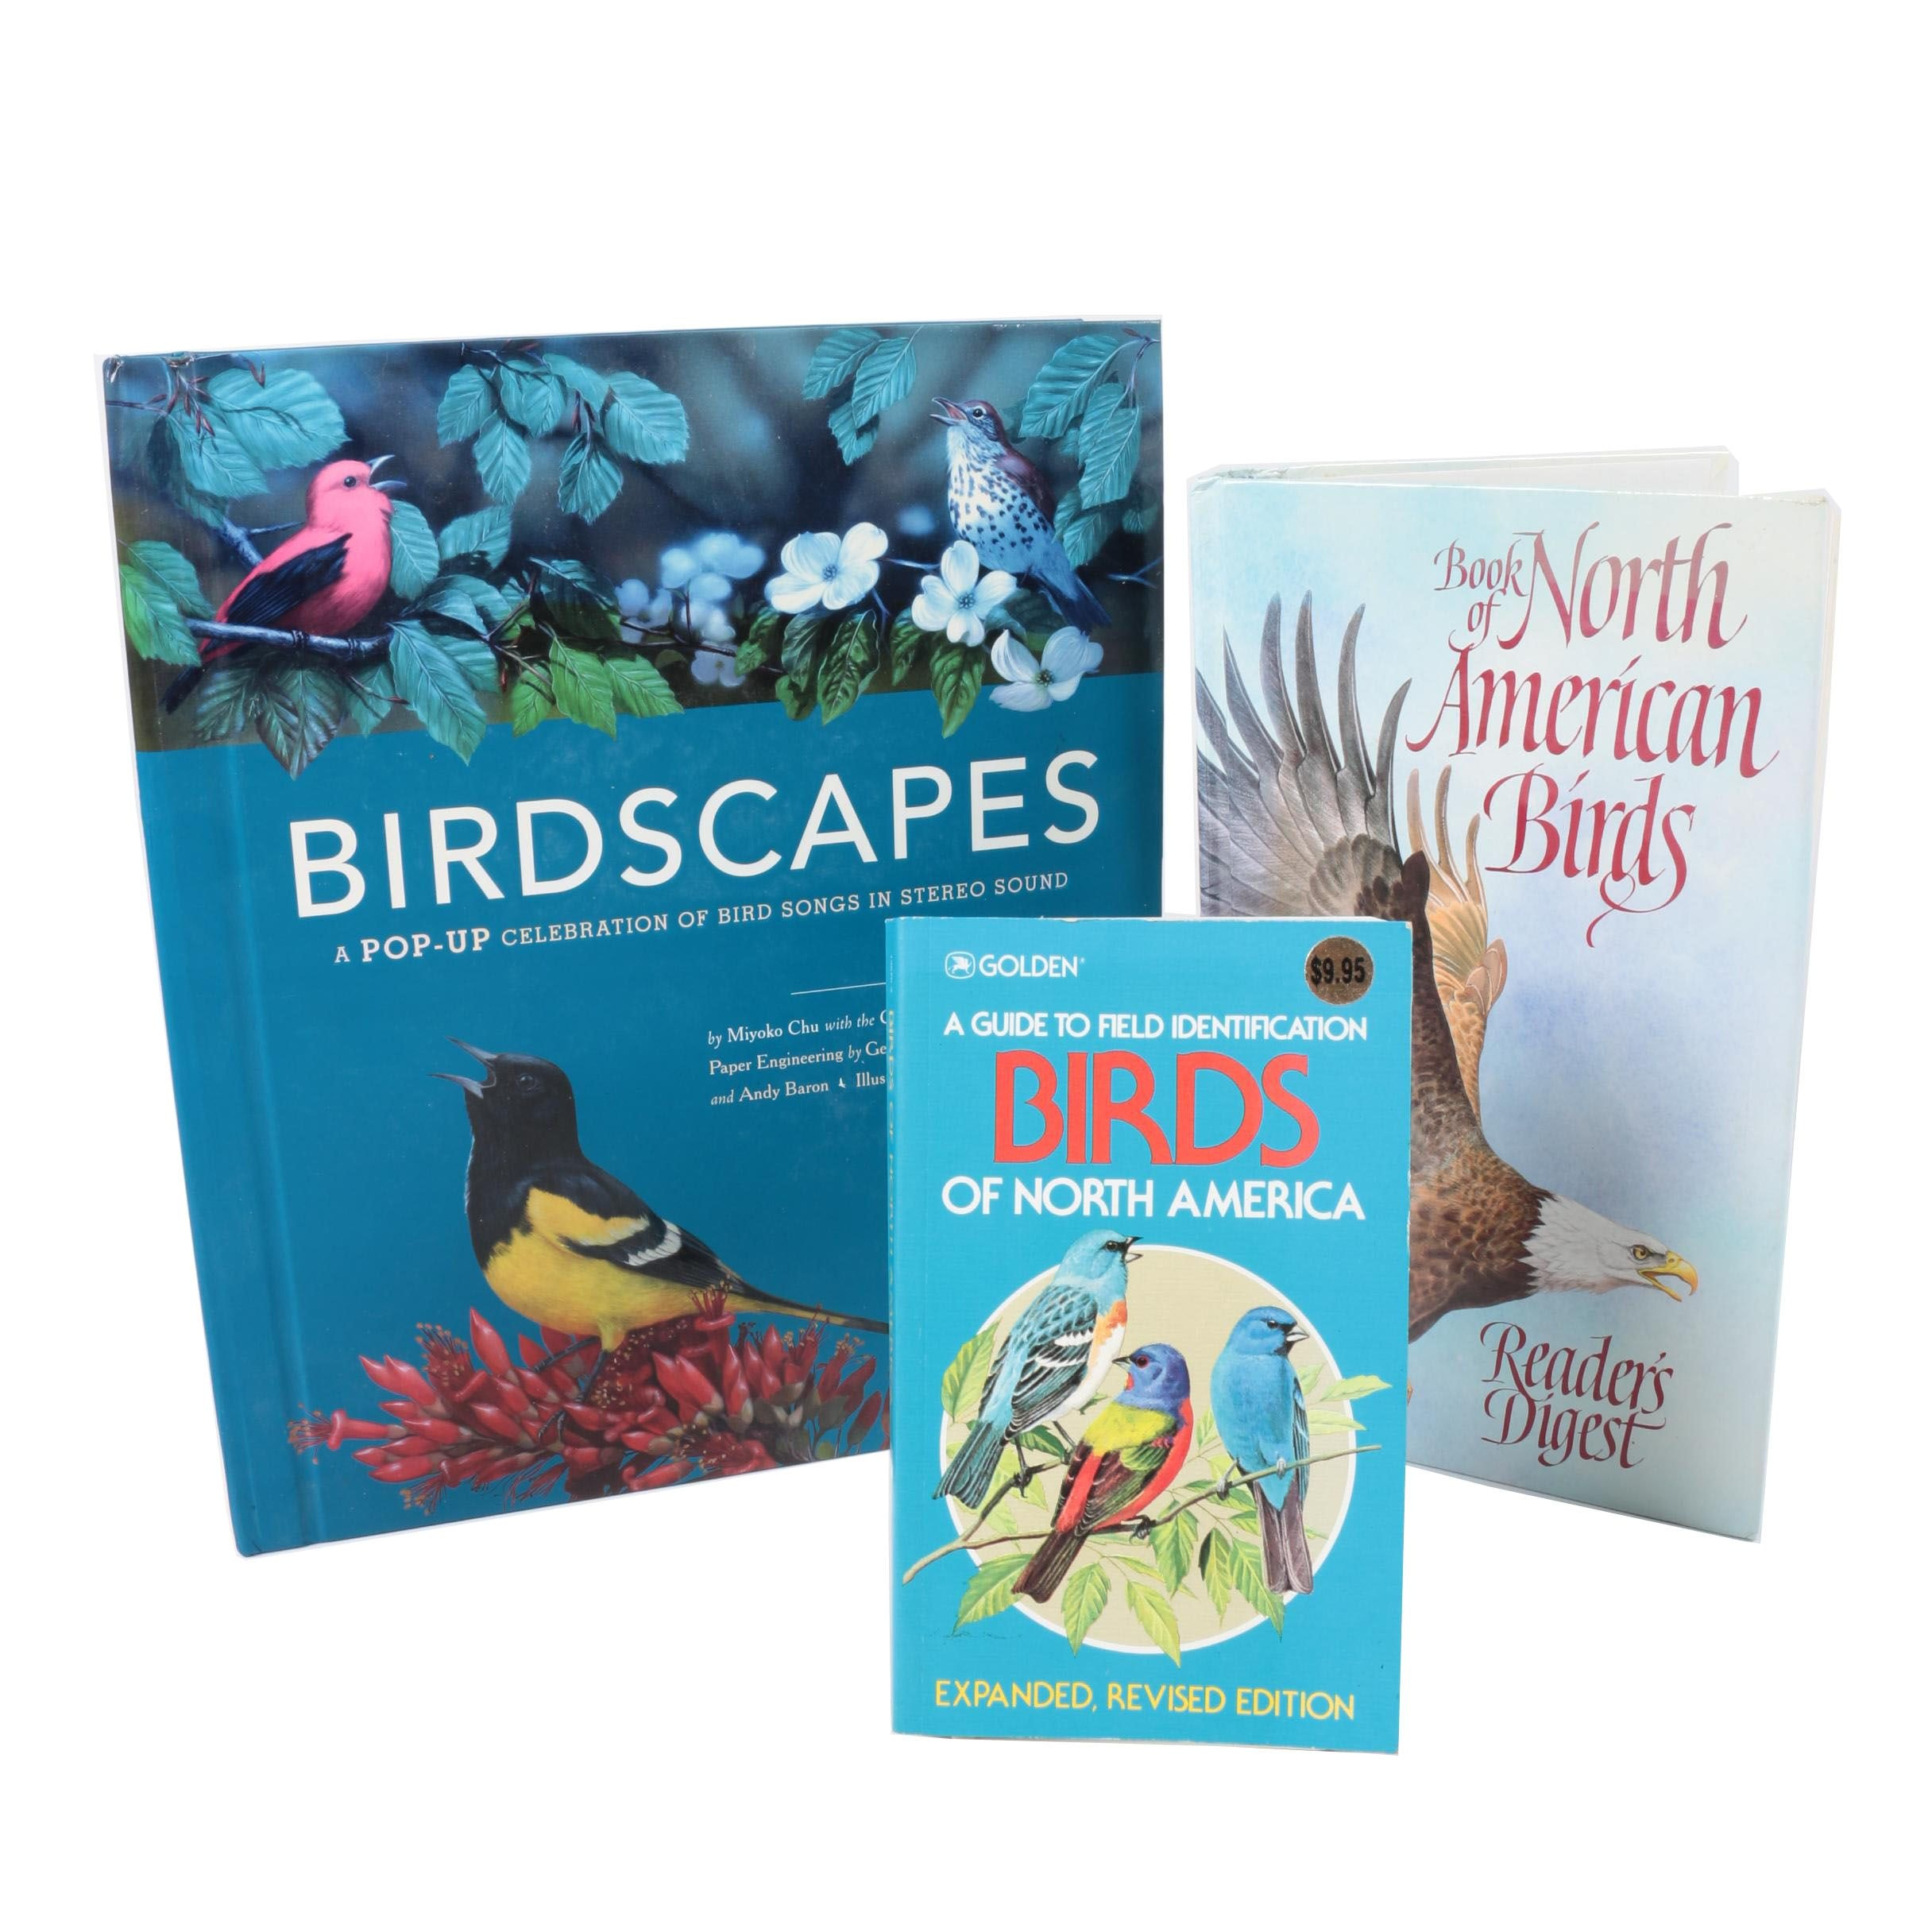 Assorted Books on Birds